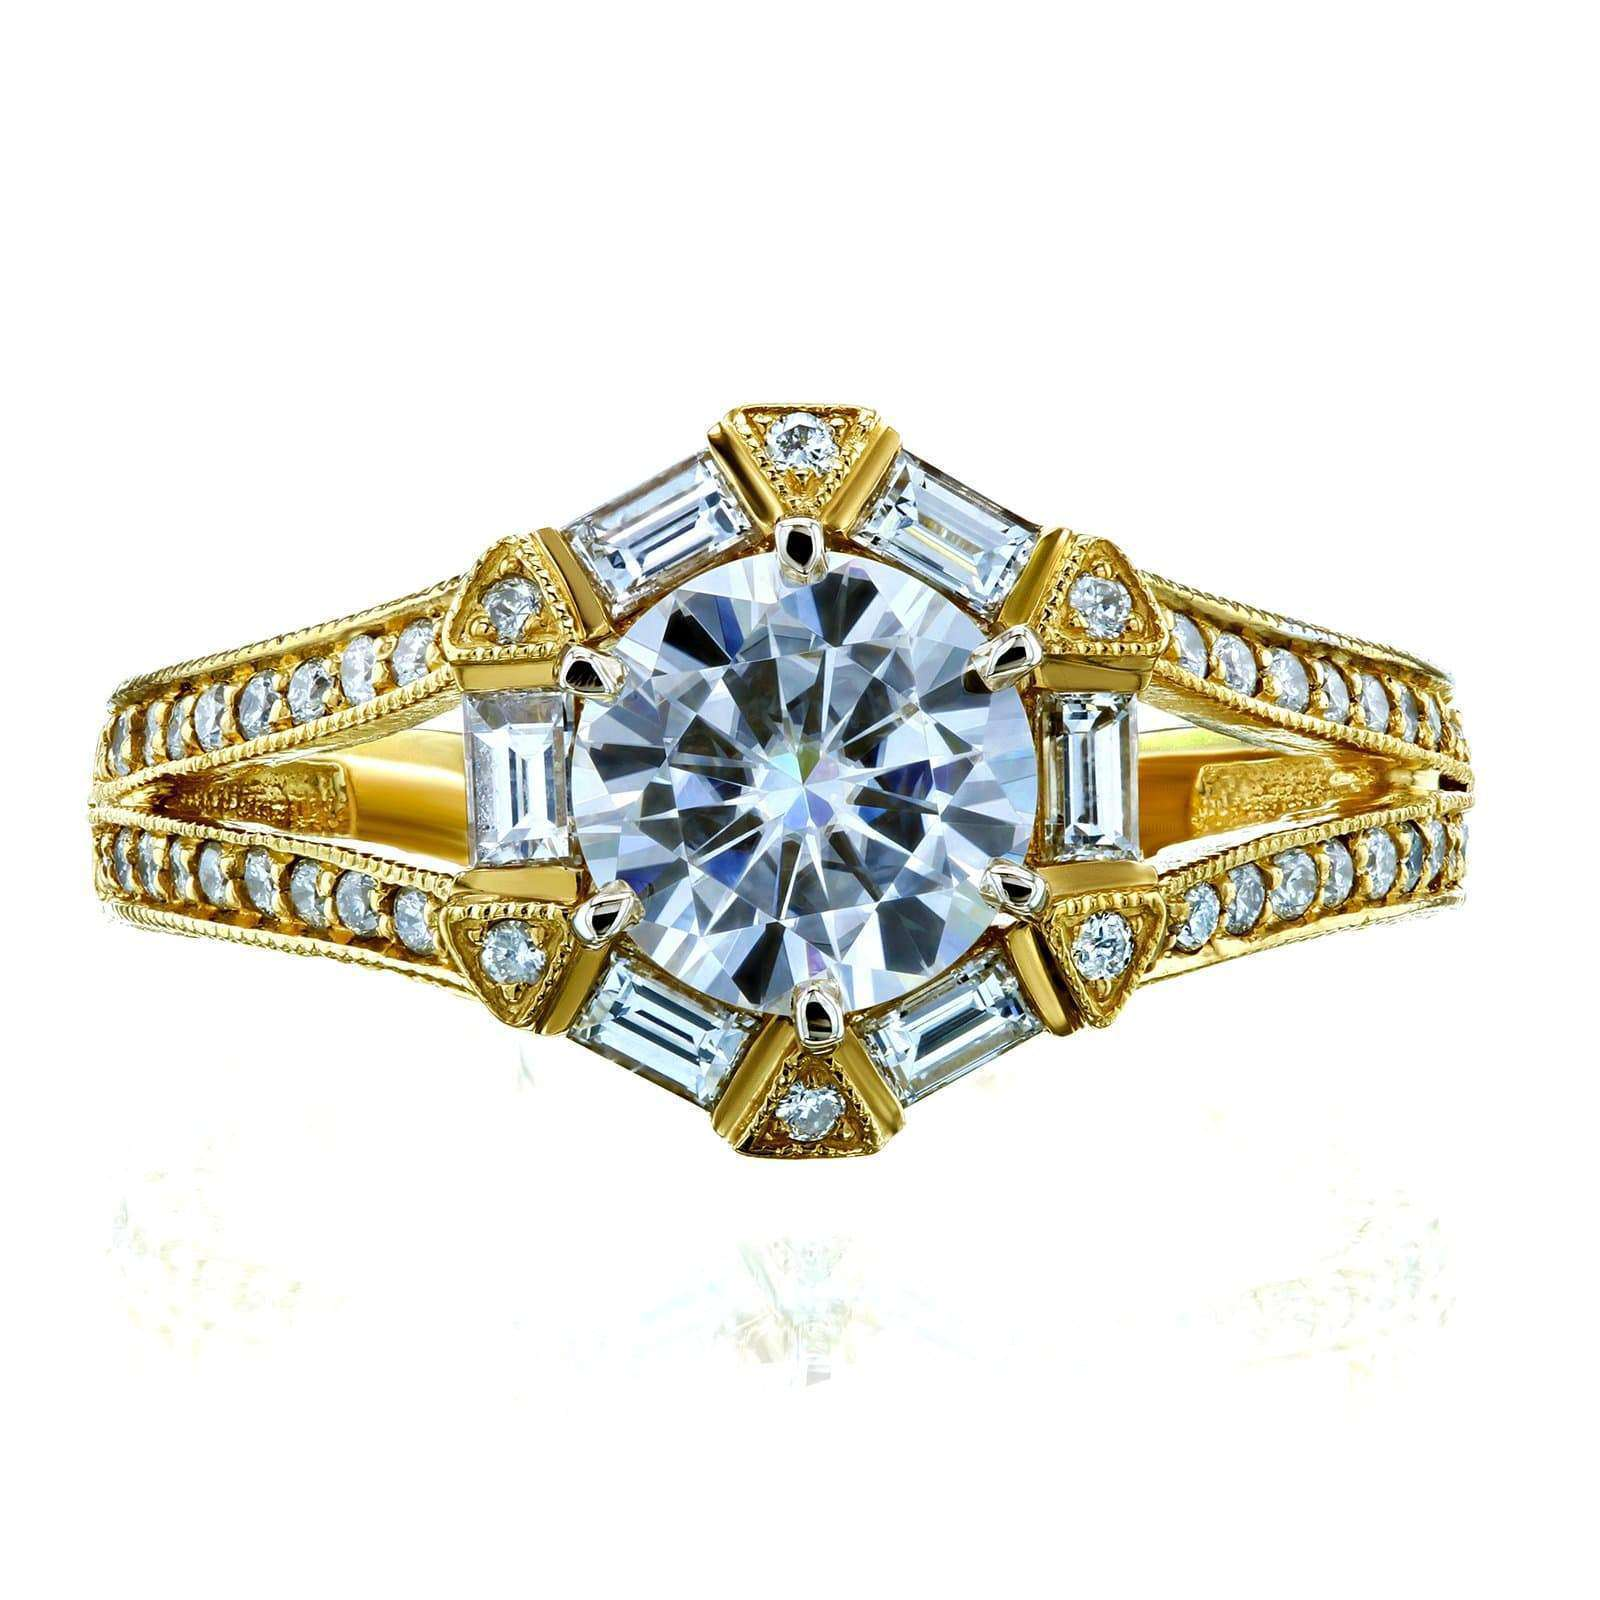 Promos Art Deco Moissanite and Diamond Accent Engagement Ring 1 1/2 CTW 14k Yellow Gold - 10